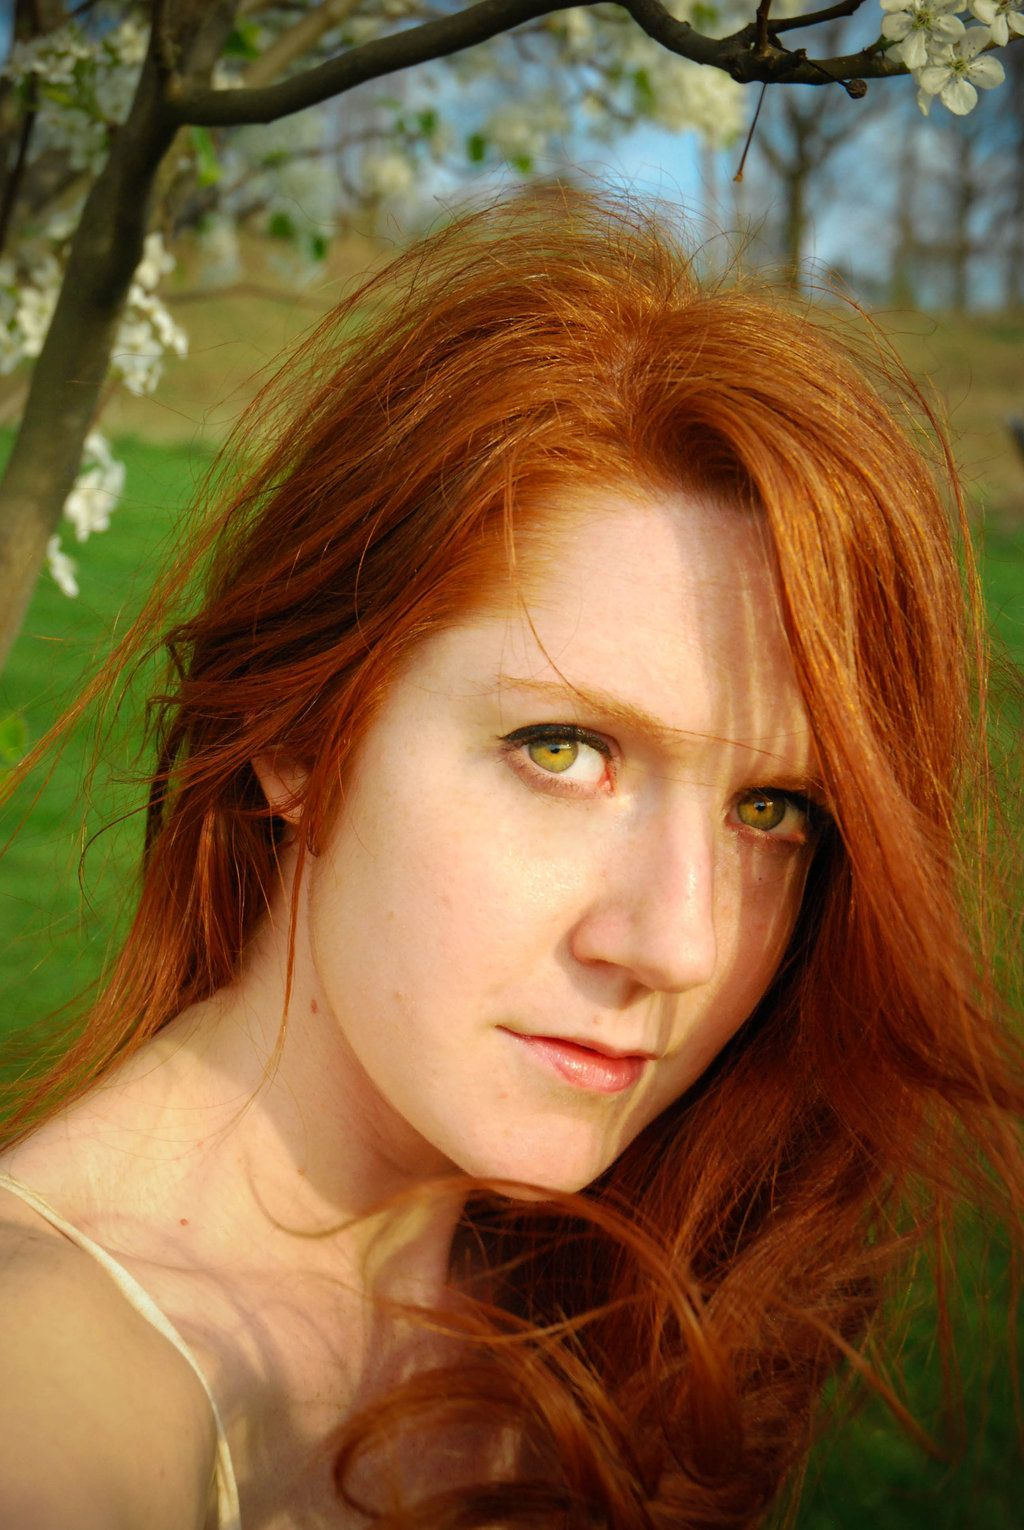 Beautiful Natural Redhead With Green Eyes Artist And Model S Page